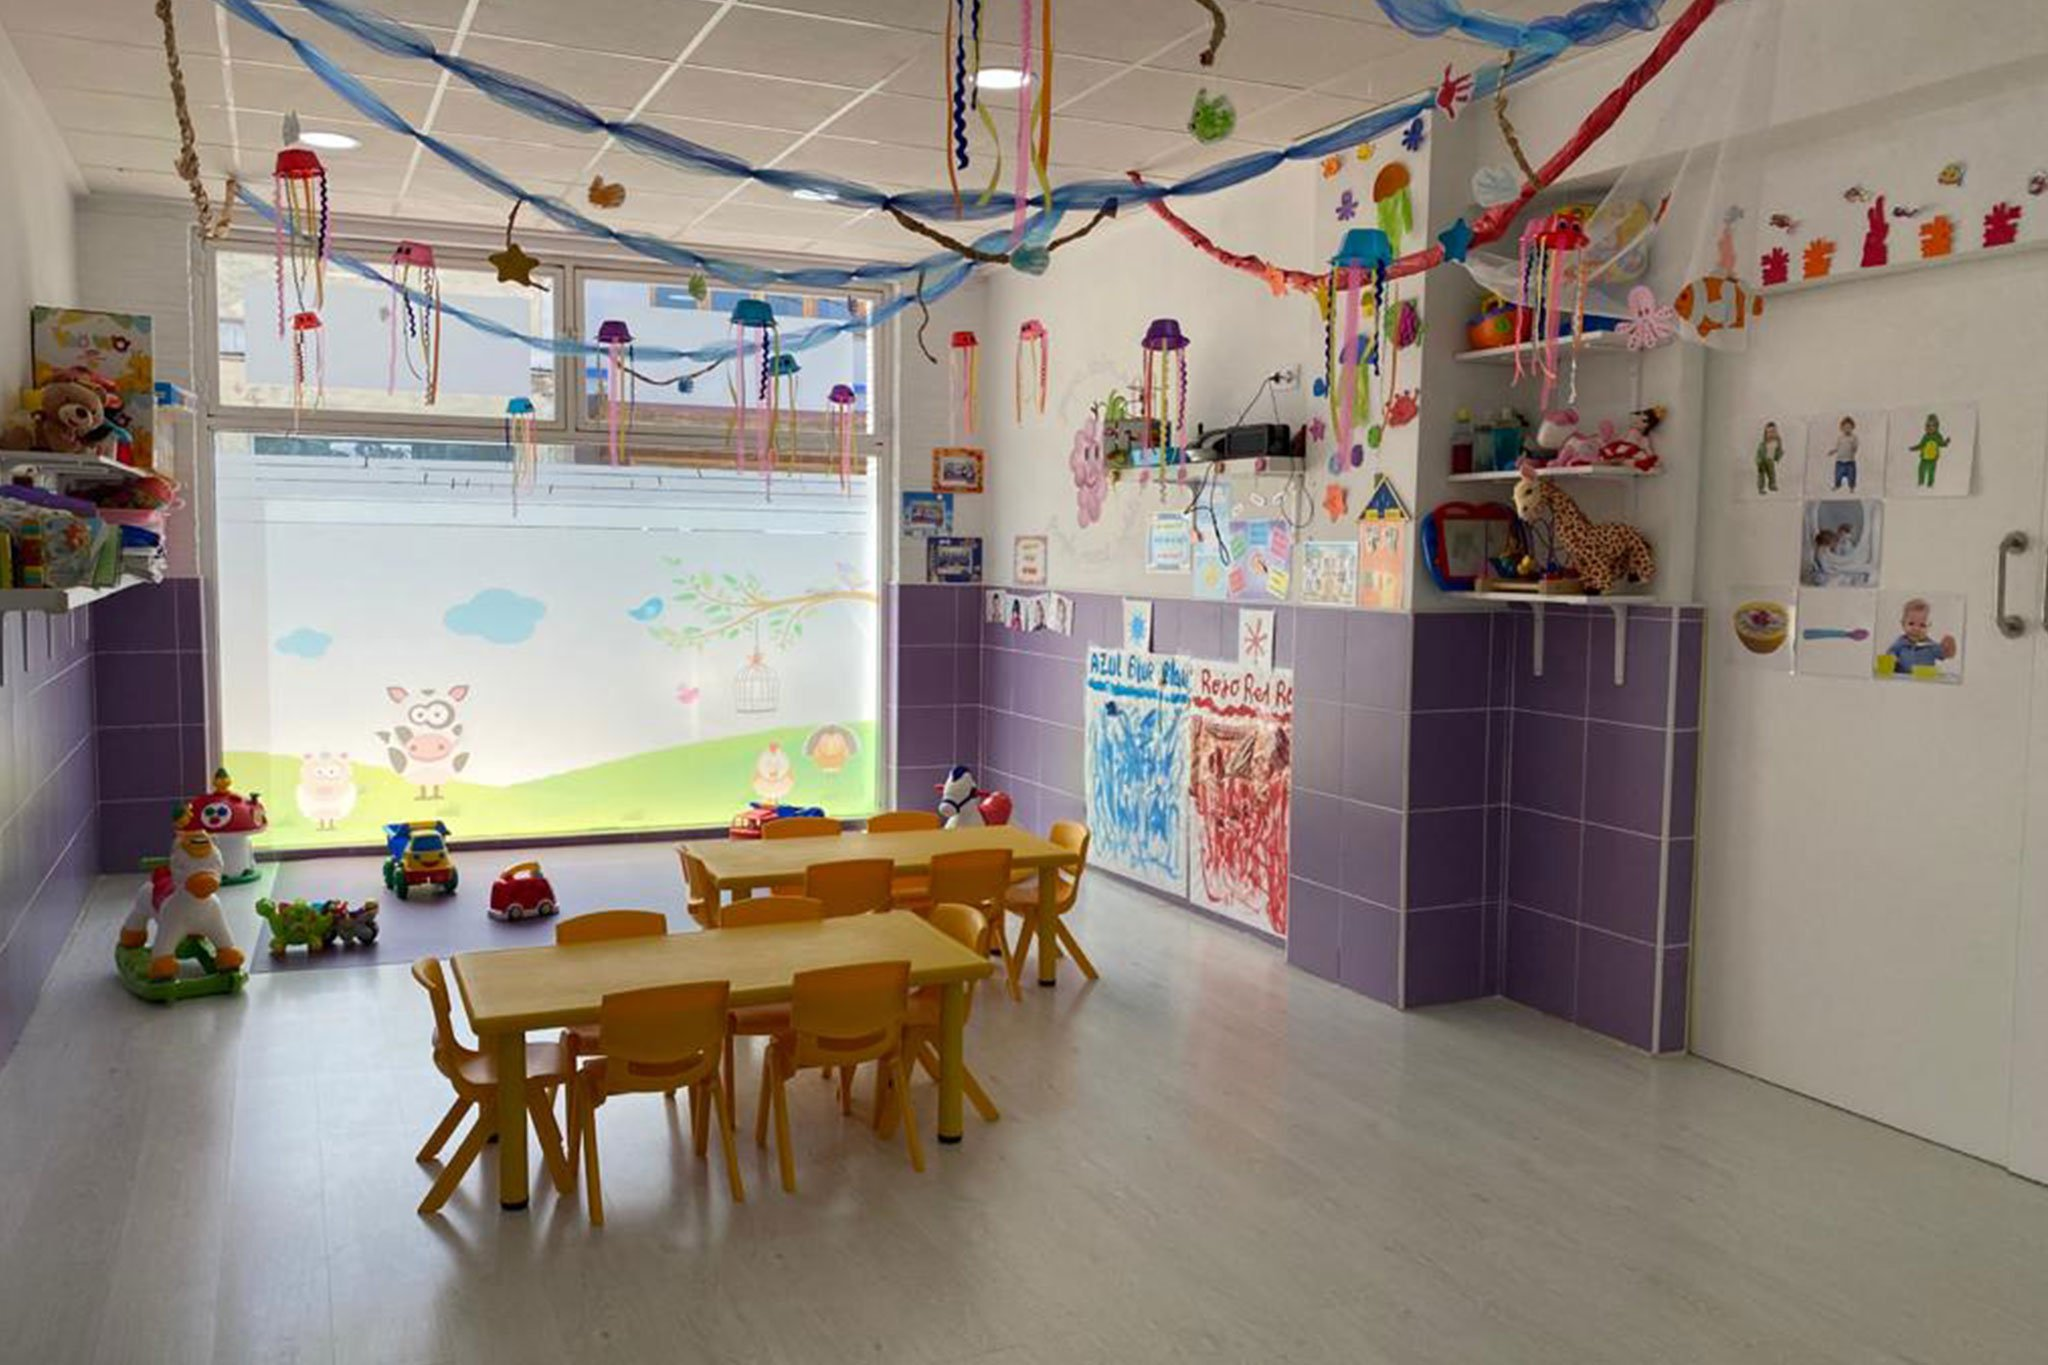 Classroom in a nursery school in Dénia - Bombonets